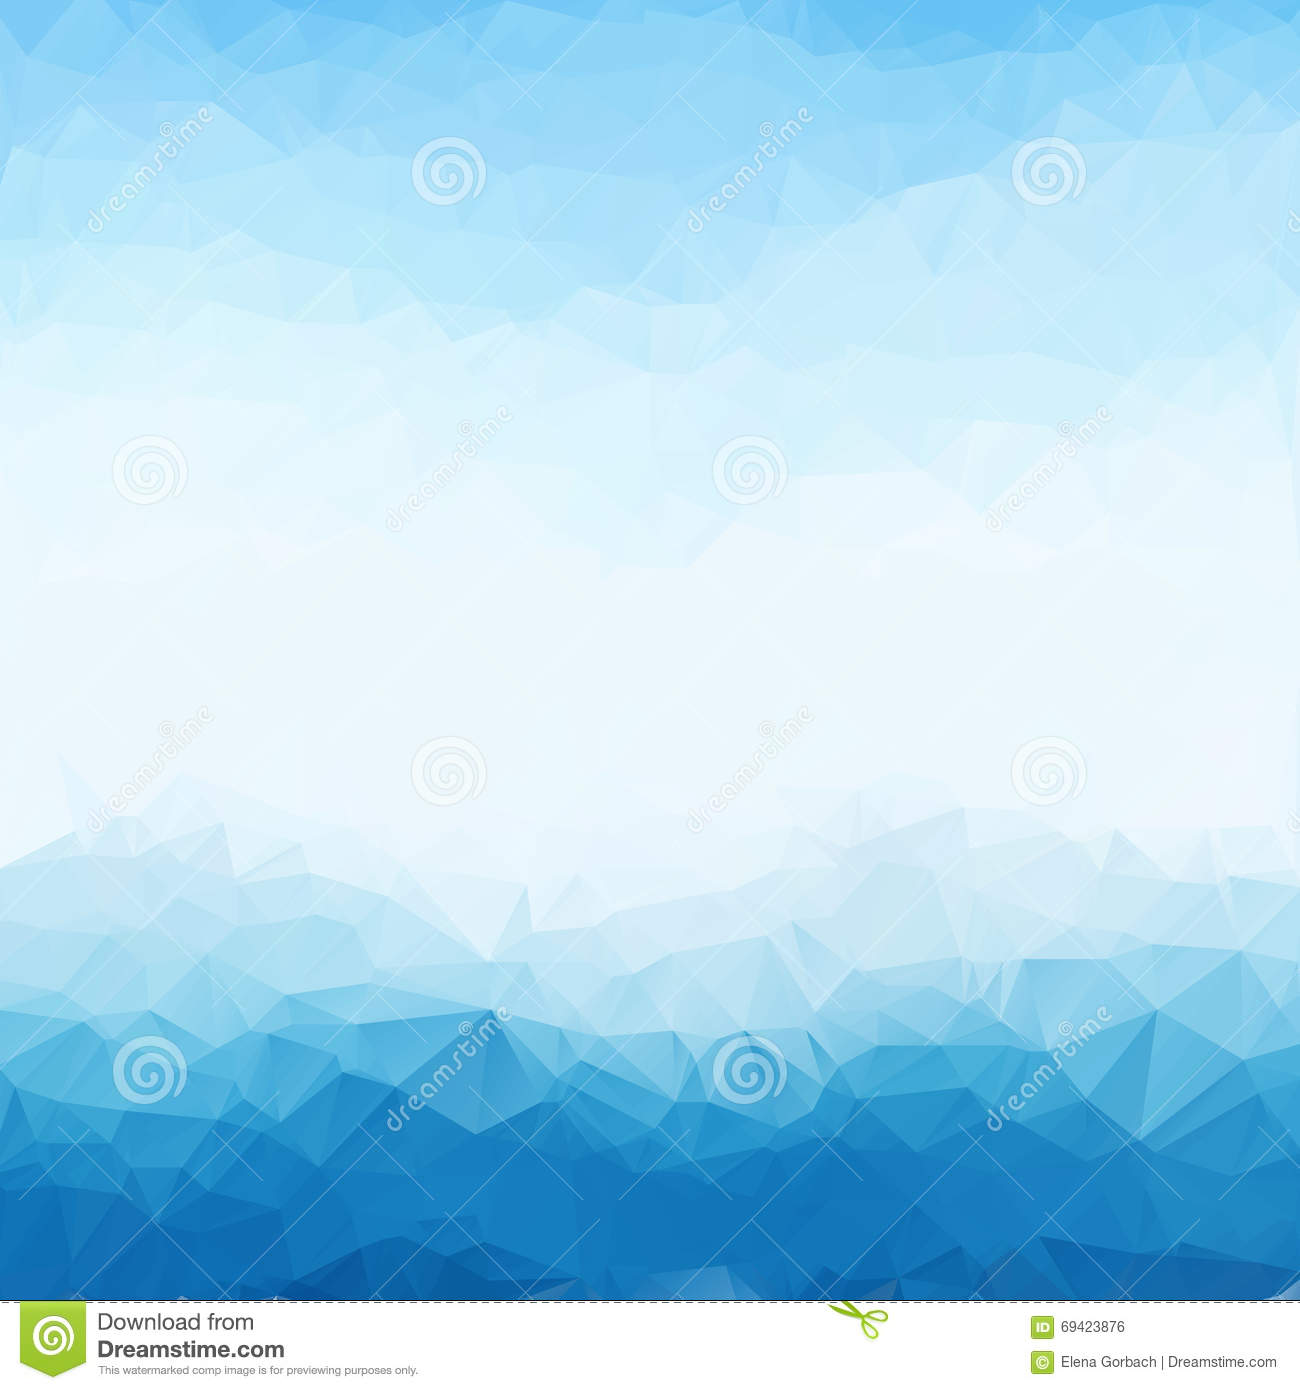 Light blue bright triangle polygon background frame. Abstract Geometrical Backdrop. Geometric design for business